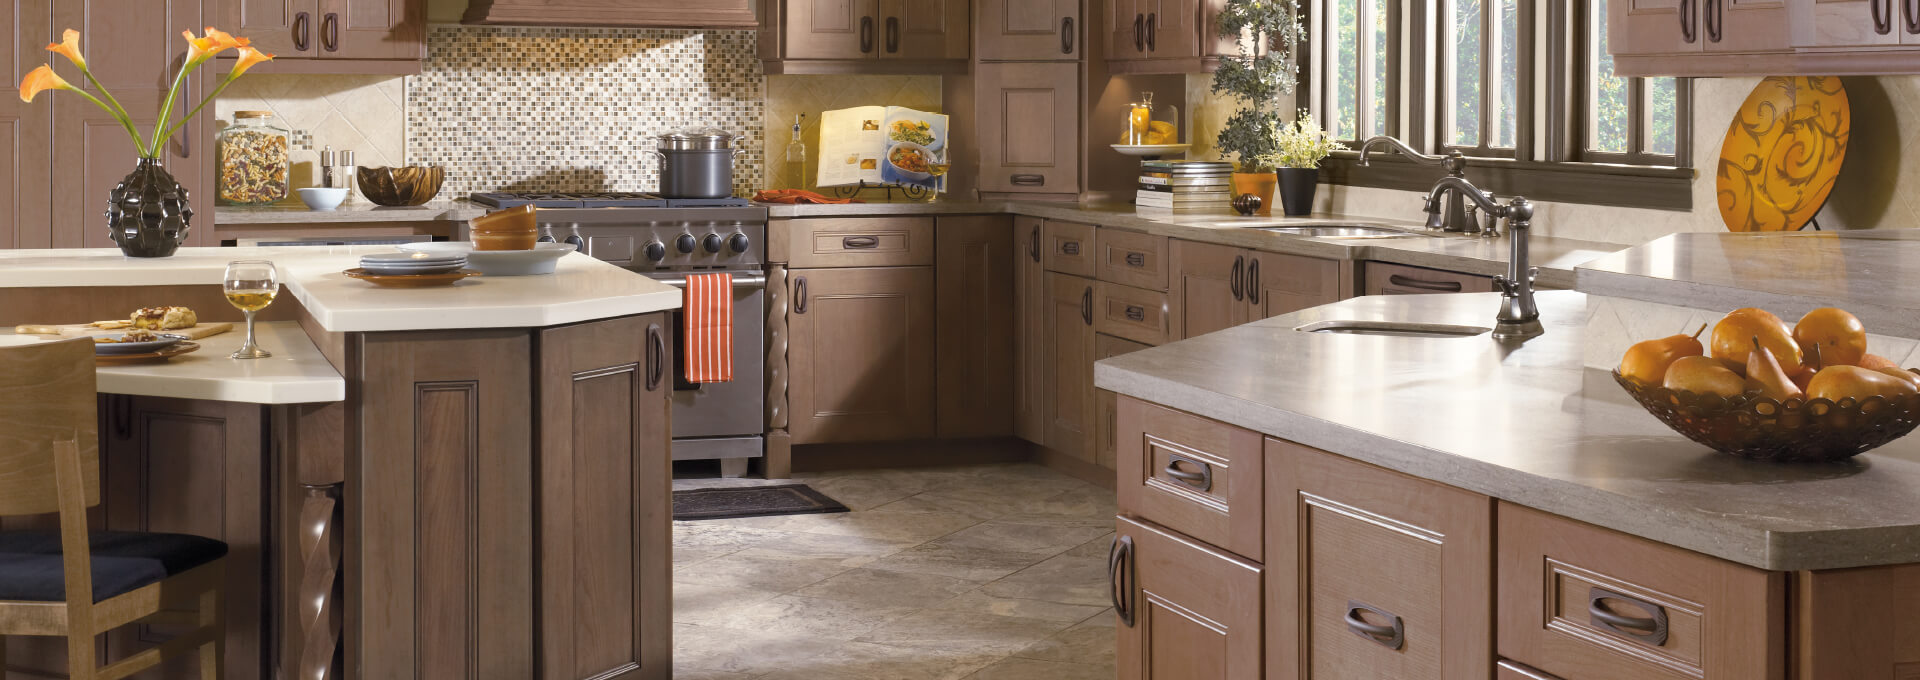 kitchen express light wood kitchen cabinets - Kitchen Express